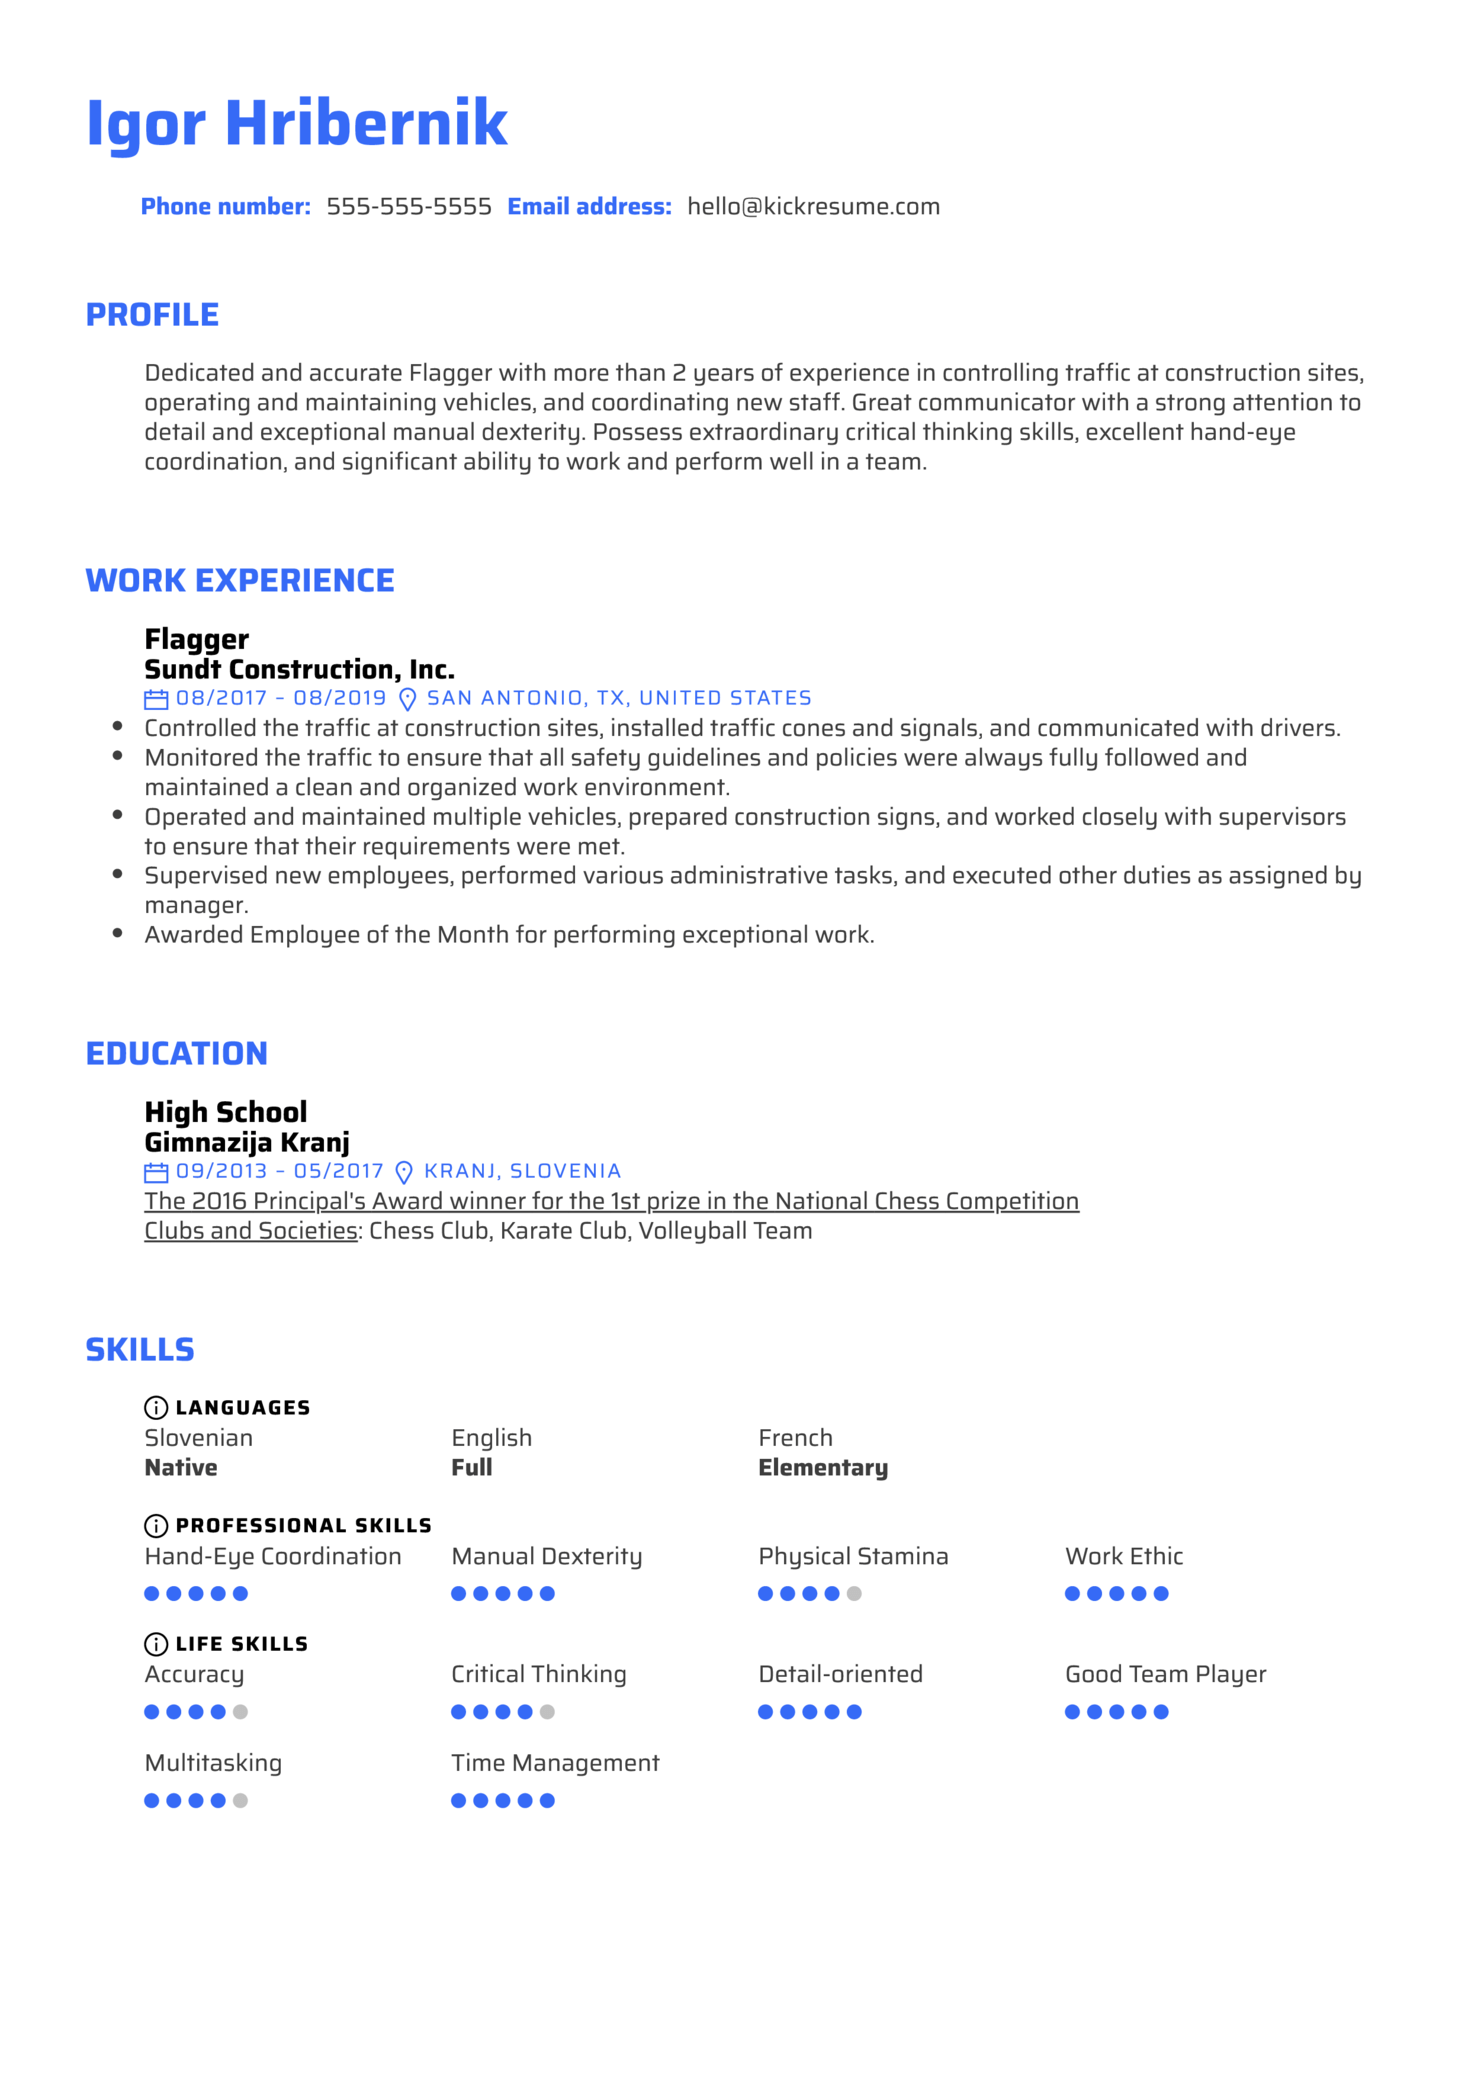 Flagger Resume Example